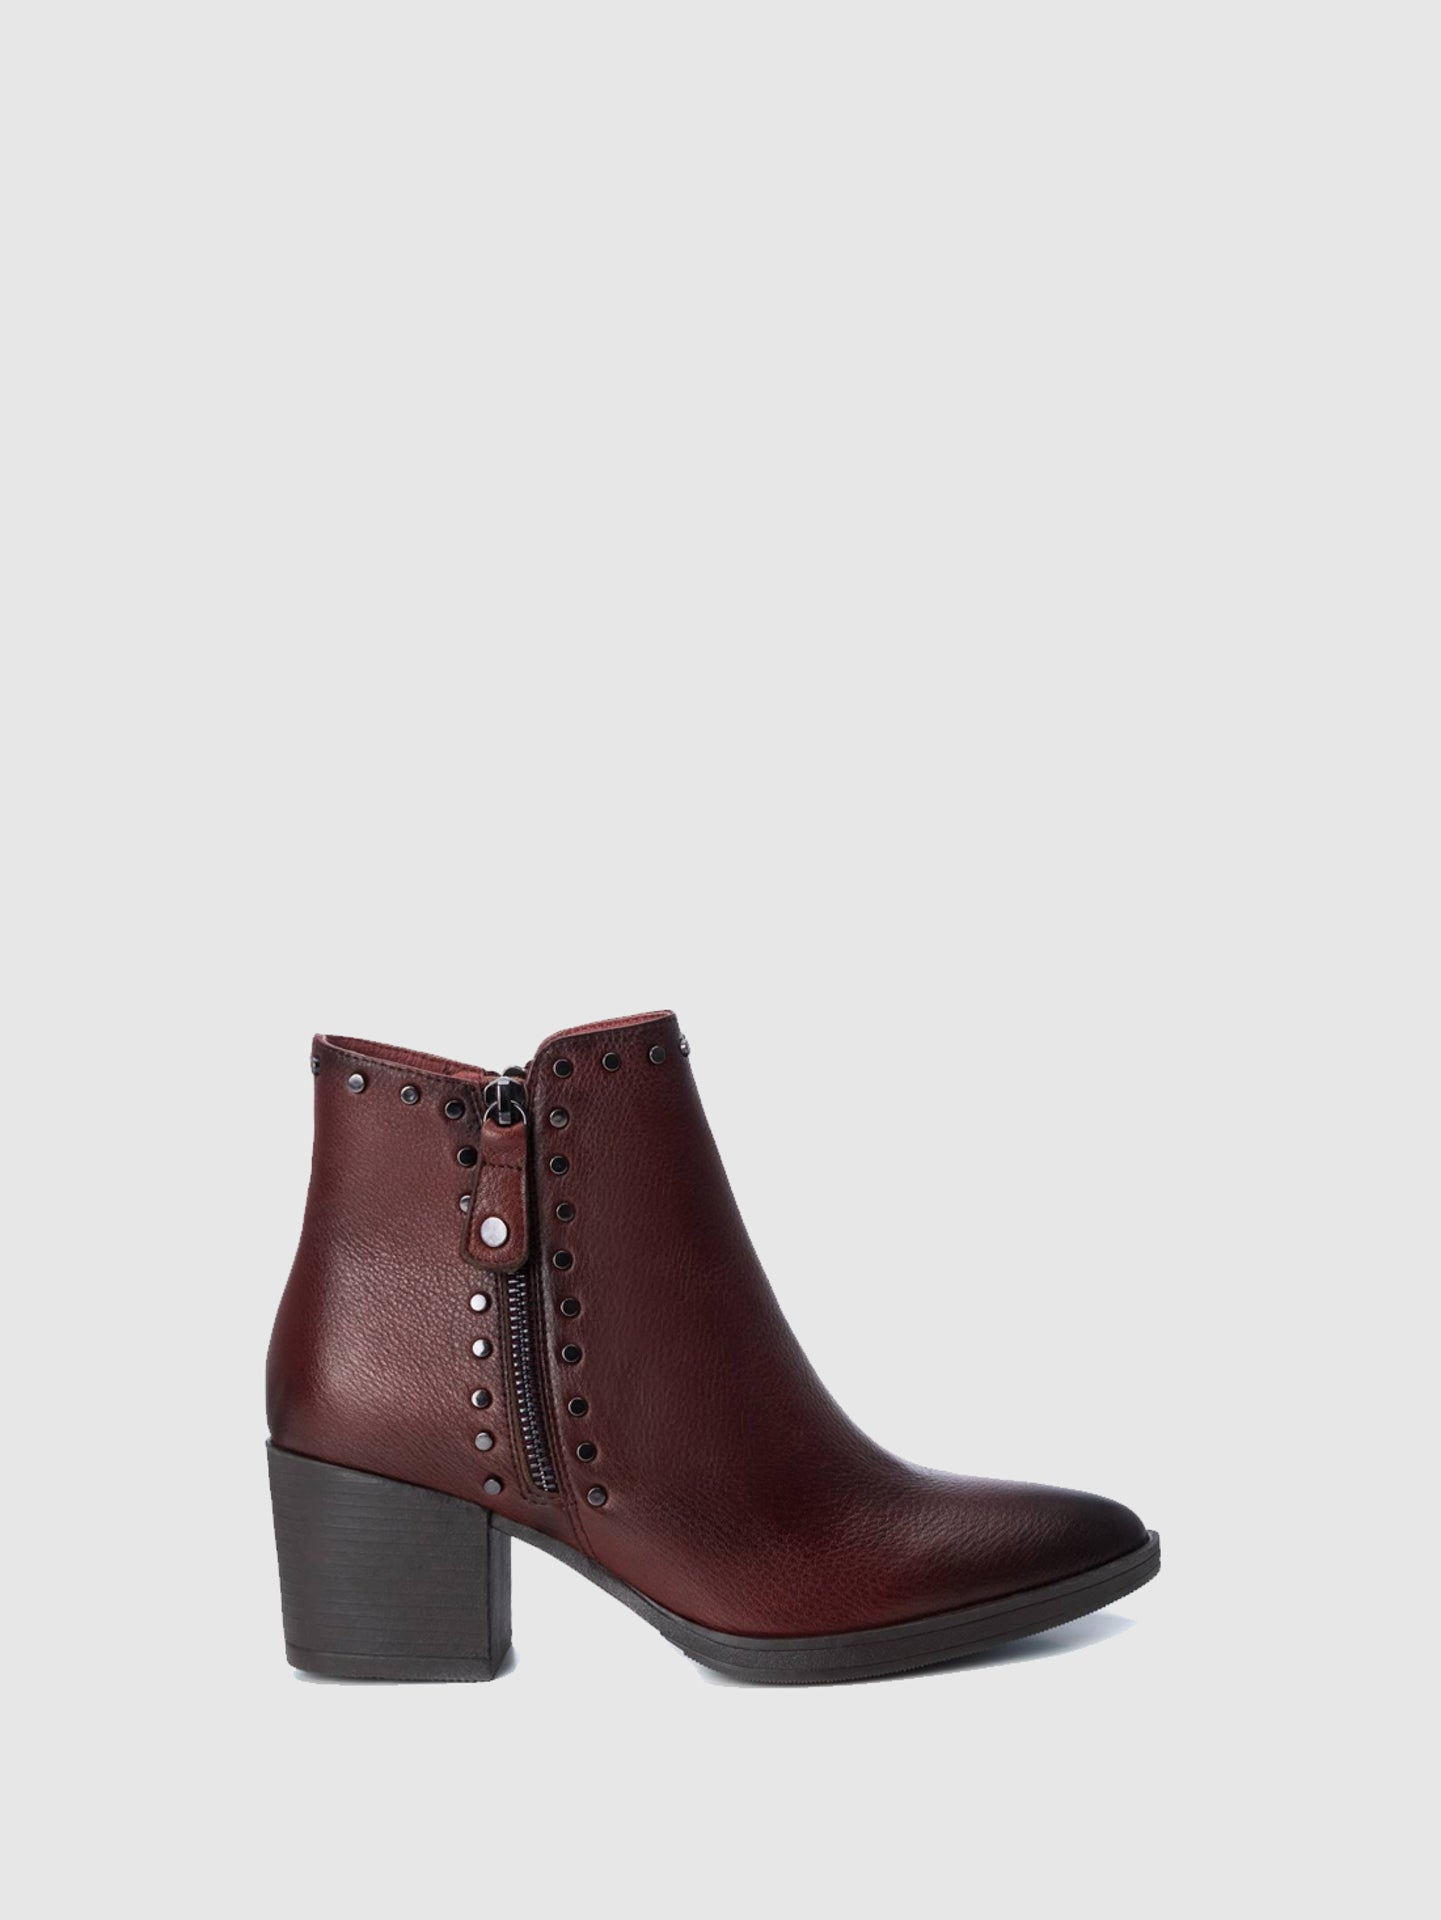 Carmela DarkRed Pointed Toe Ankle Boots